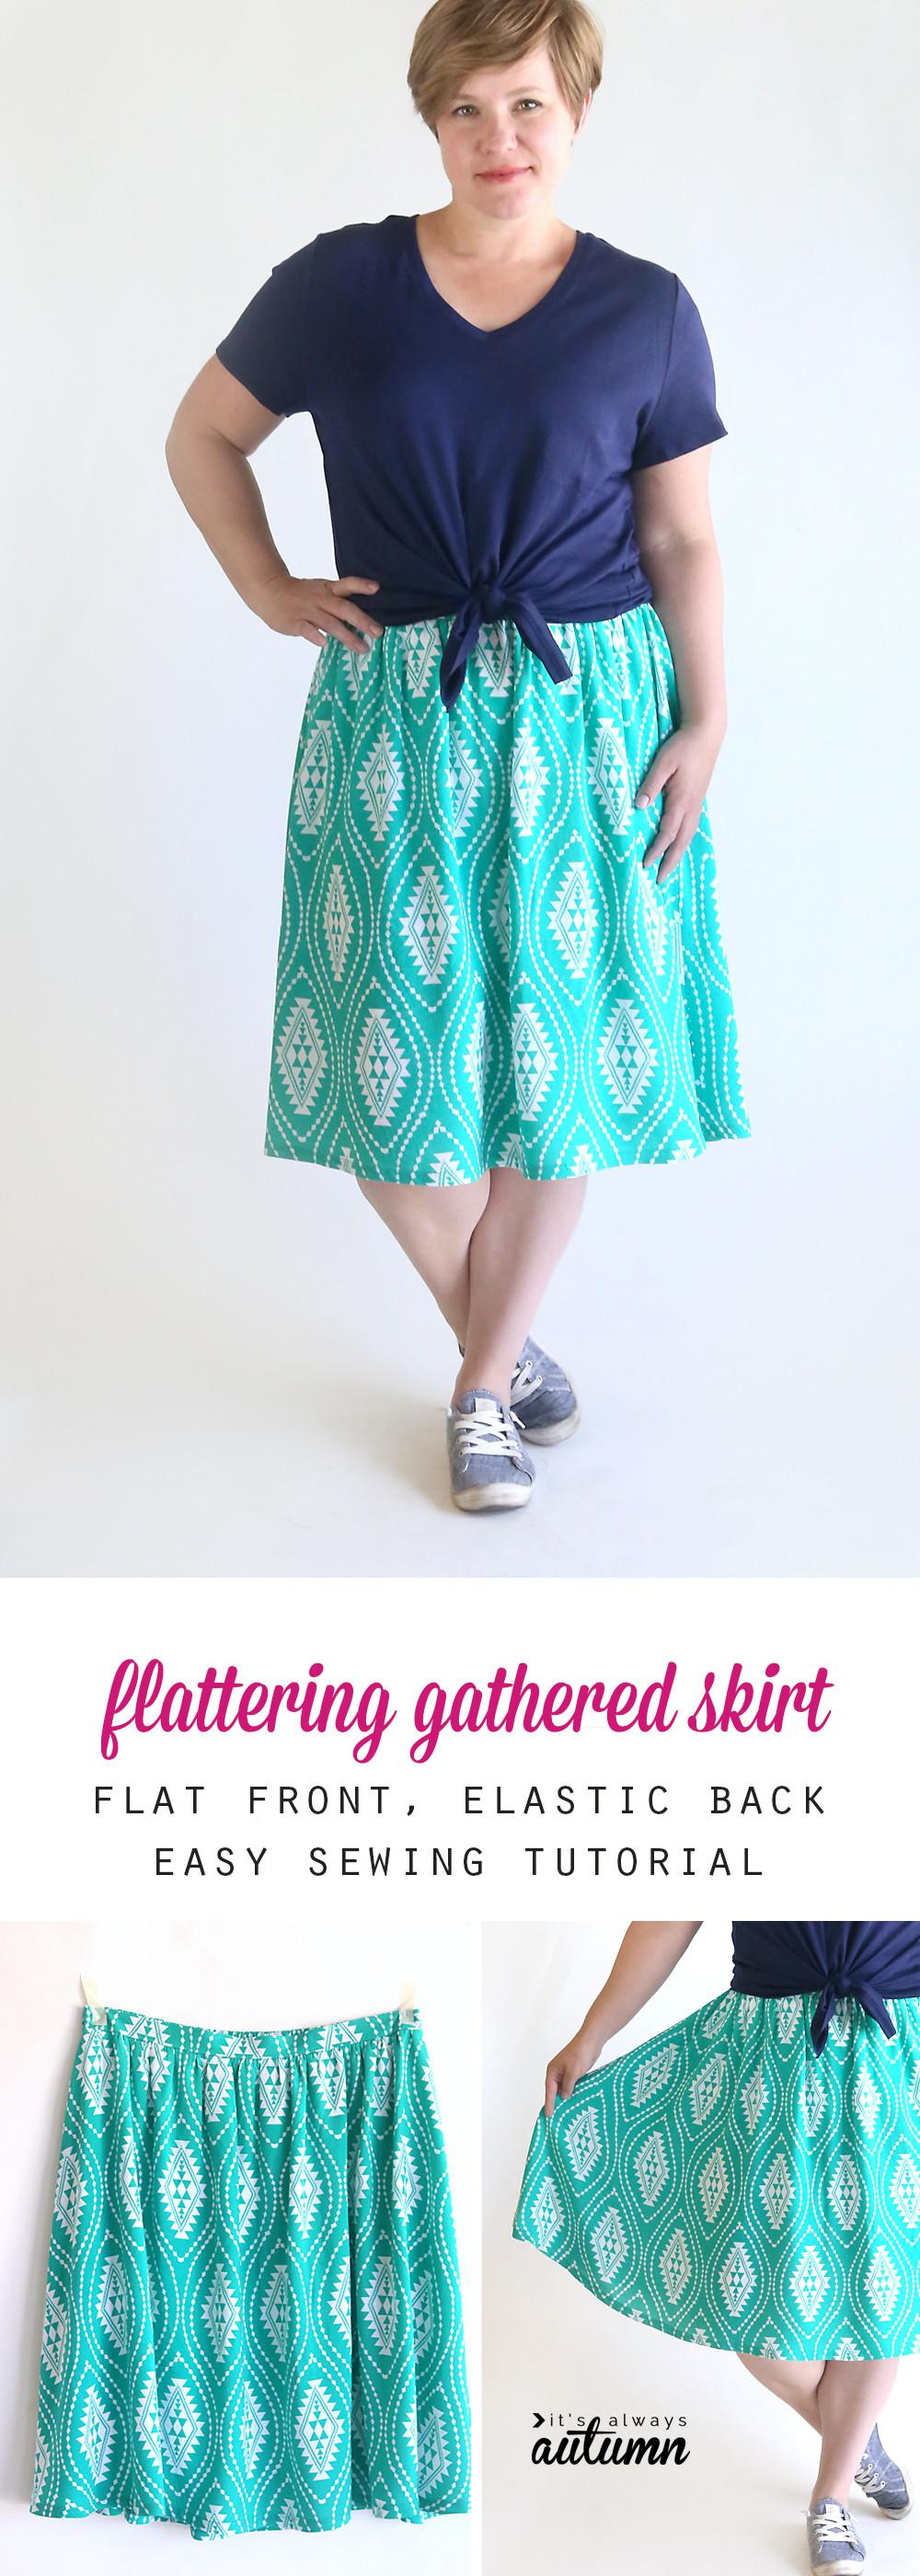 Perfect Flattering Gathered Skirt Summer